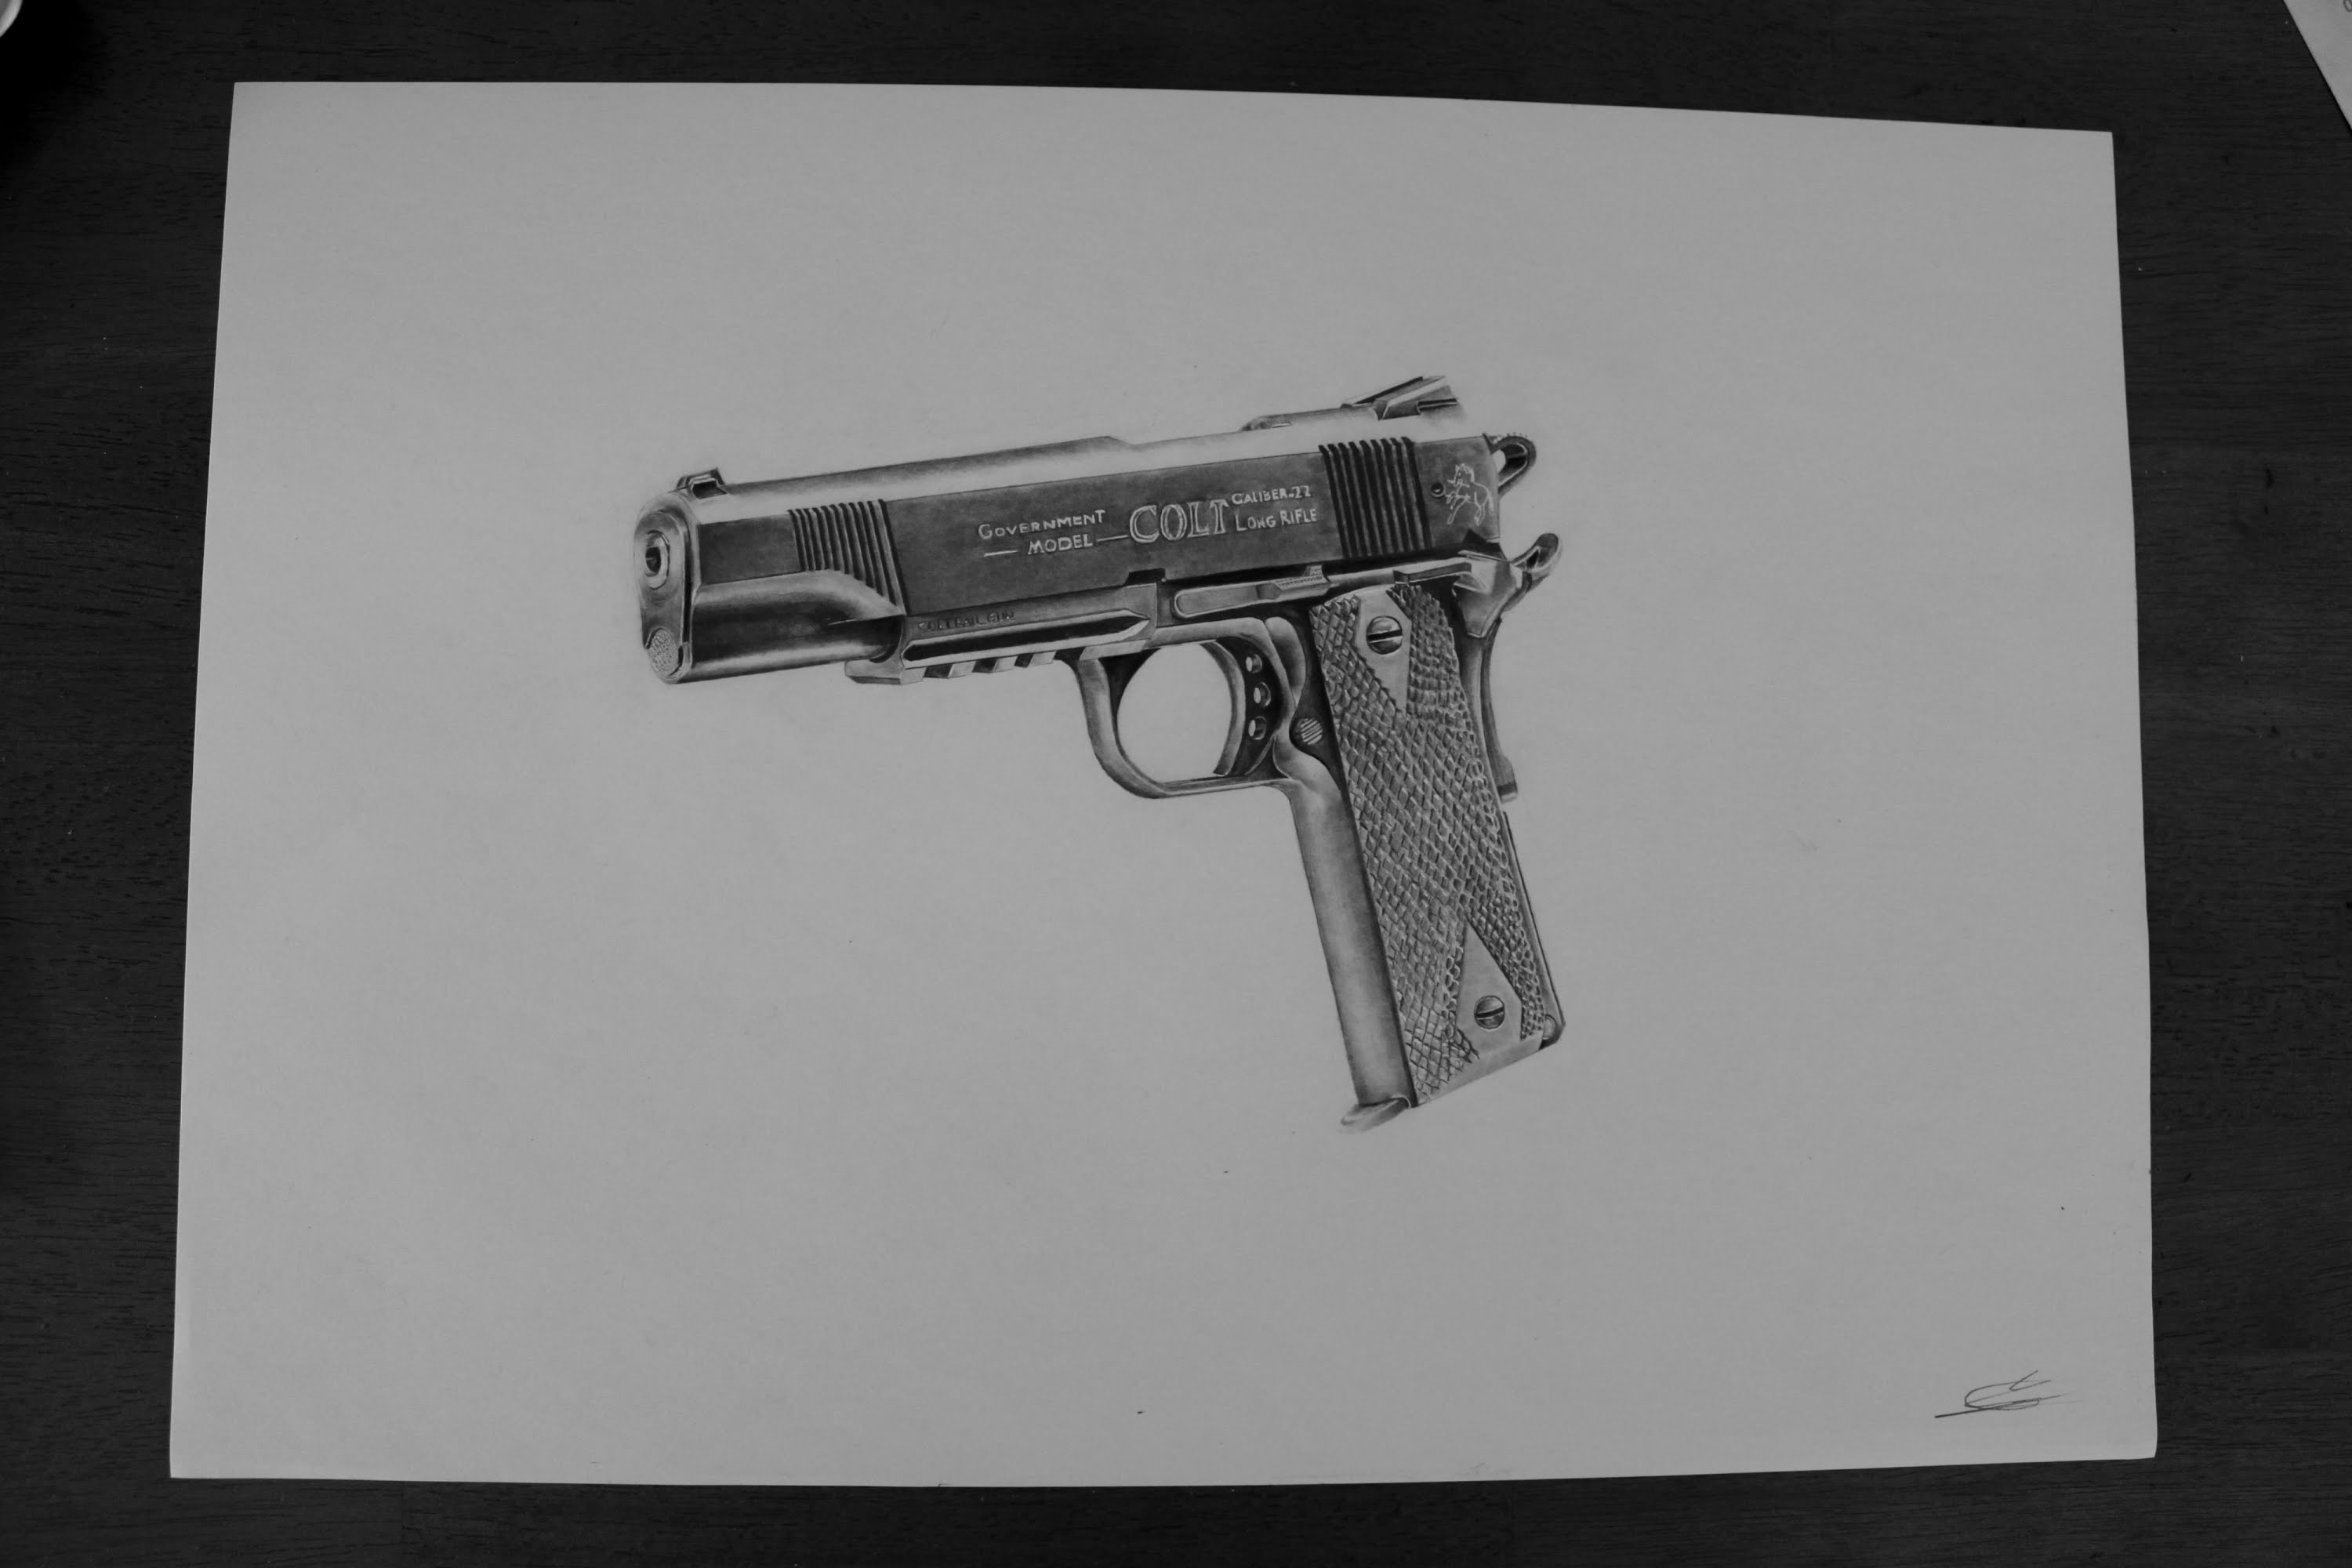 Drawn pistol pencil drawing Drawing Realistic pencil Realistic YouTube